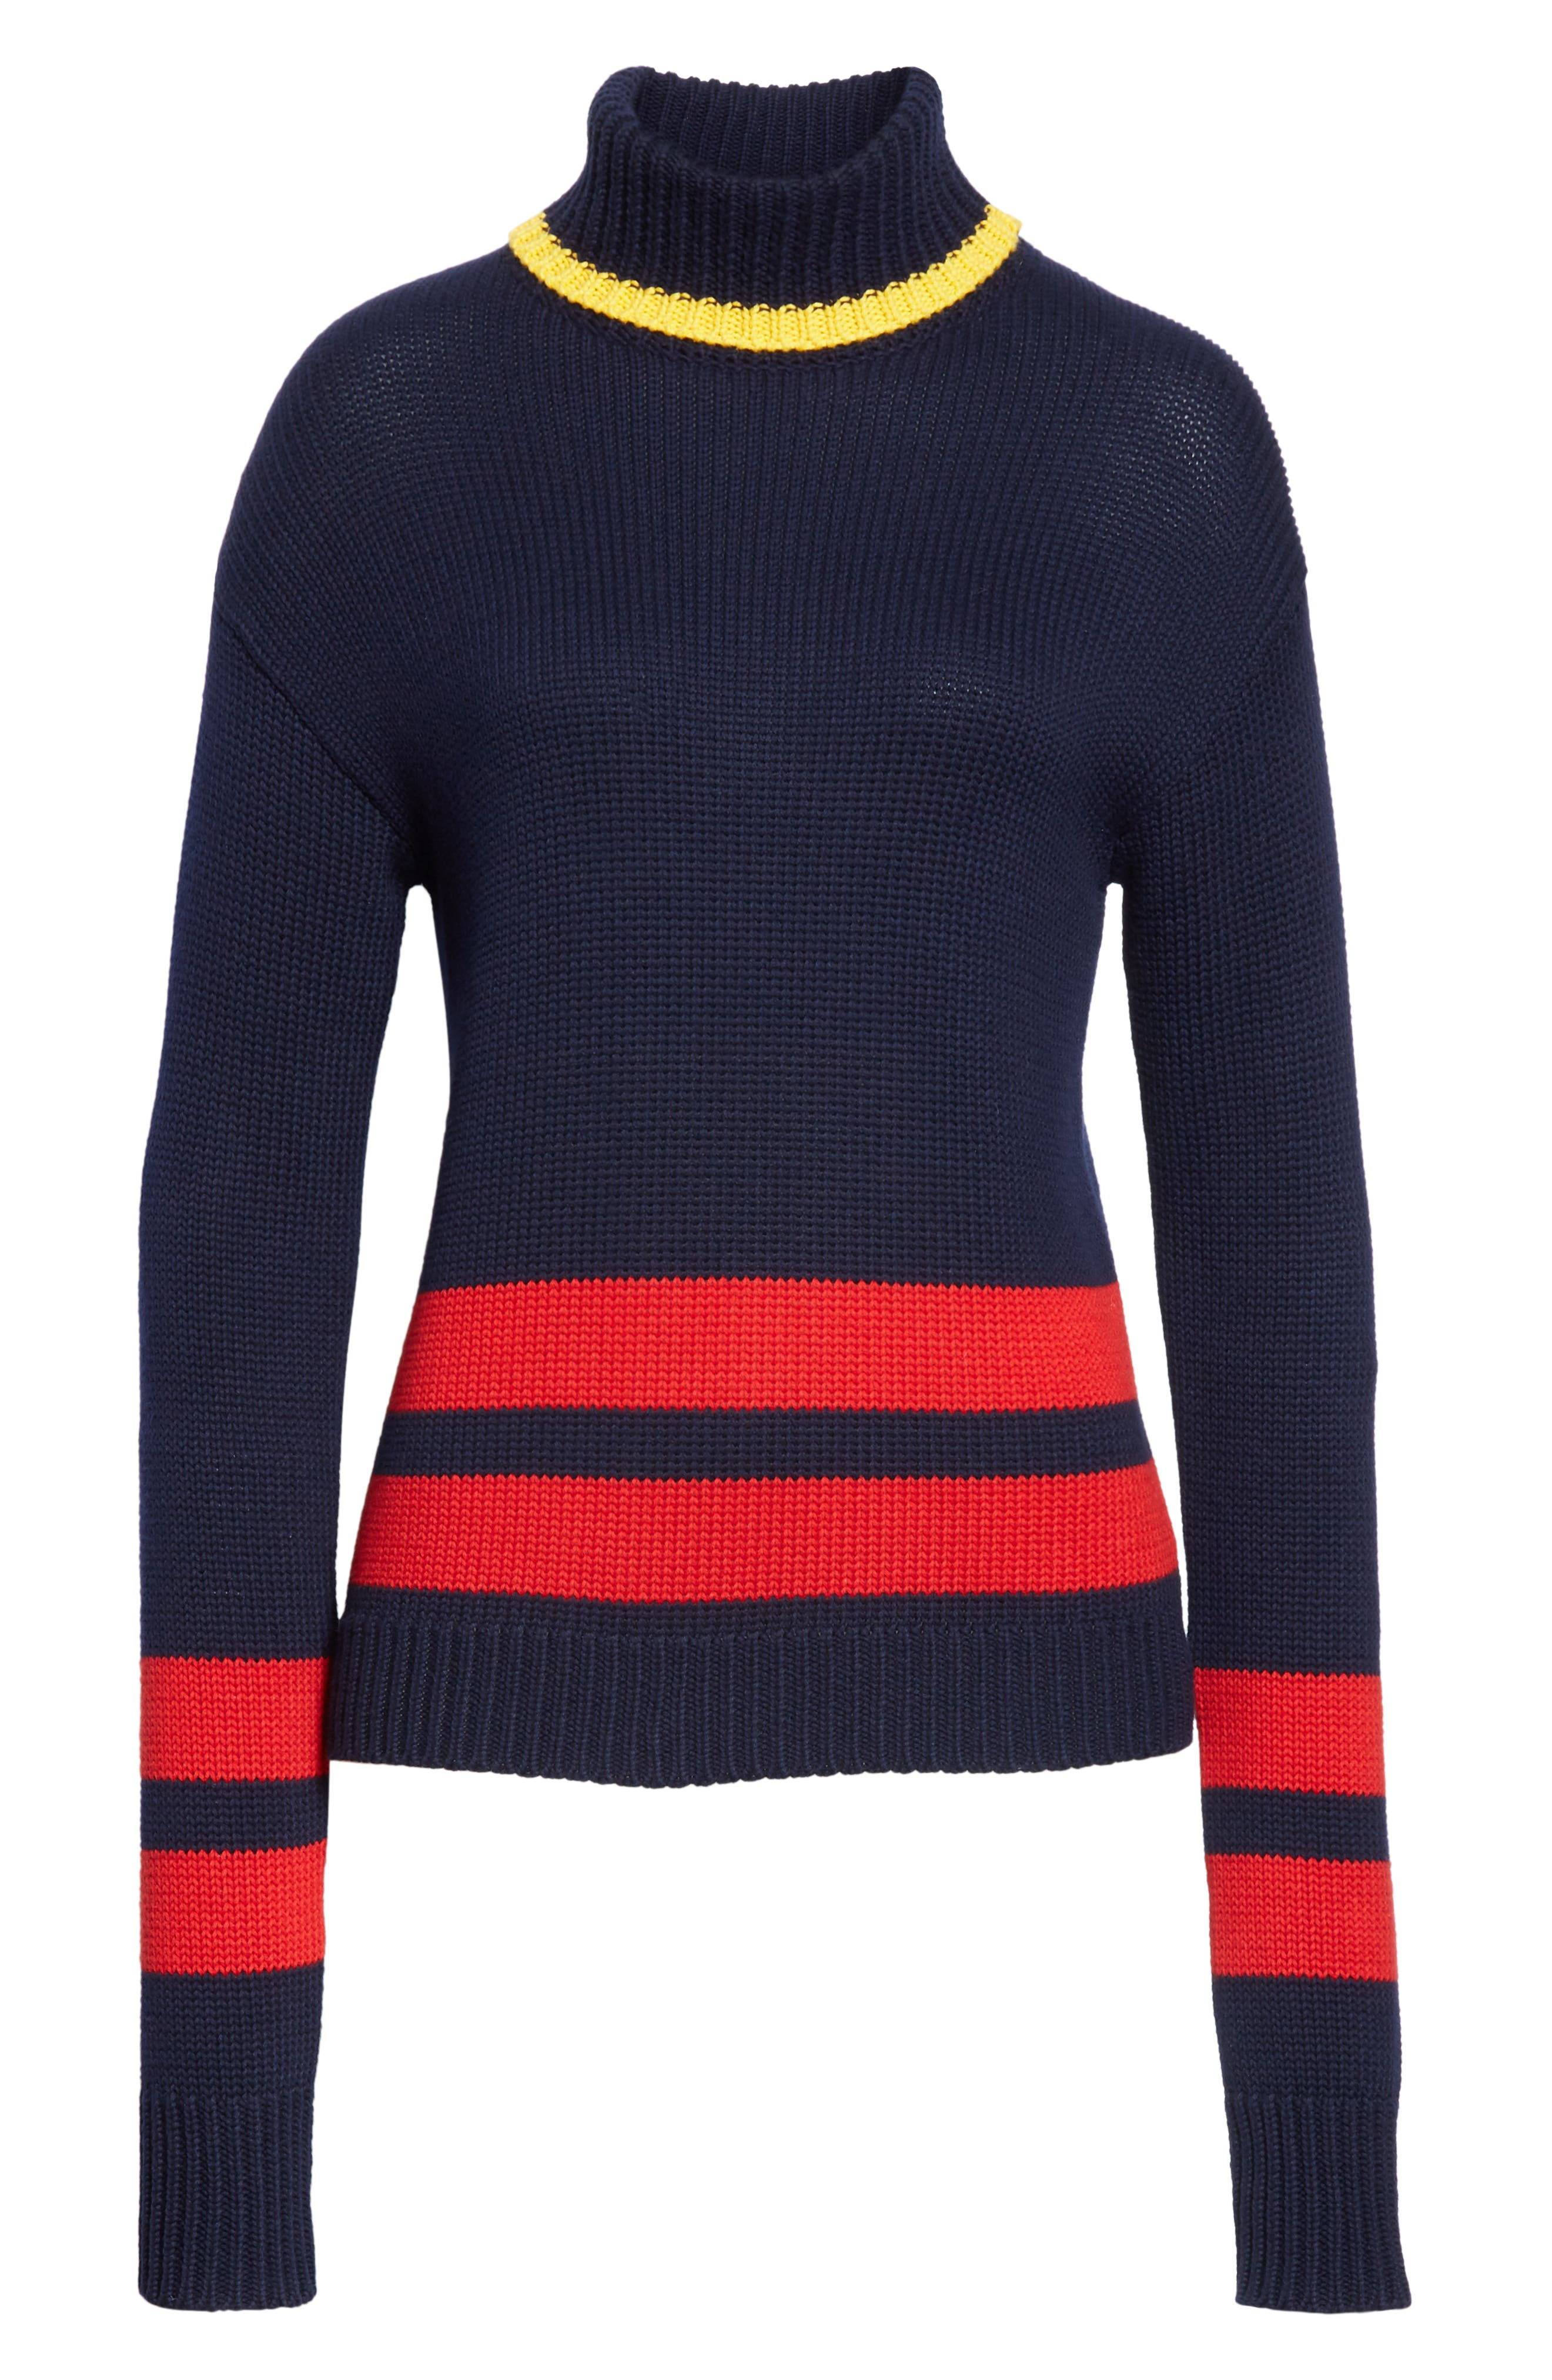 Double Stripe Sweater,                             Alternate thumbnail 6, color,                             NAVY/ RED/ GOLD